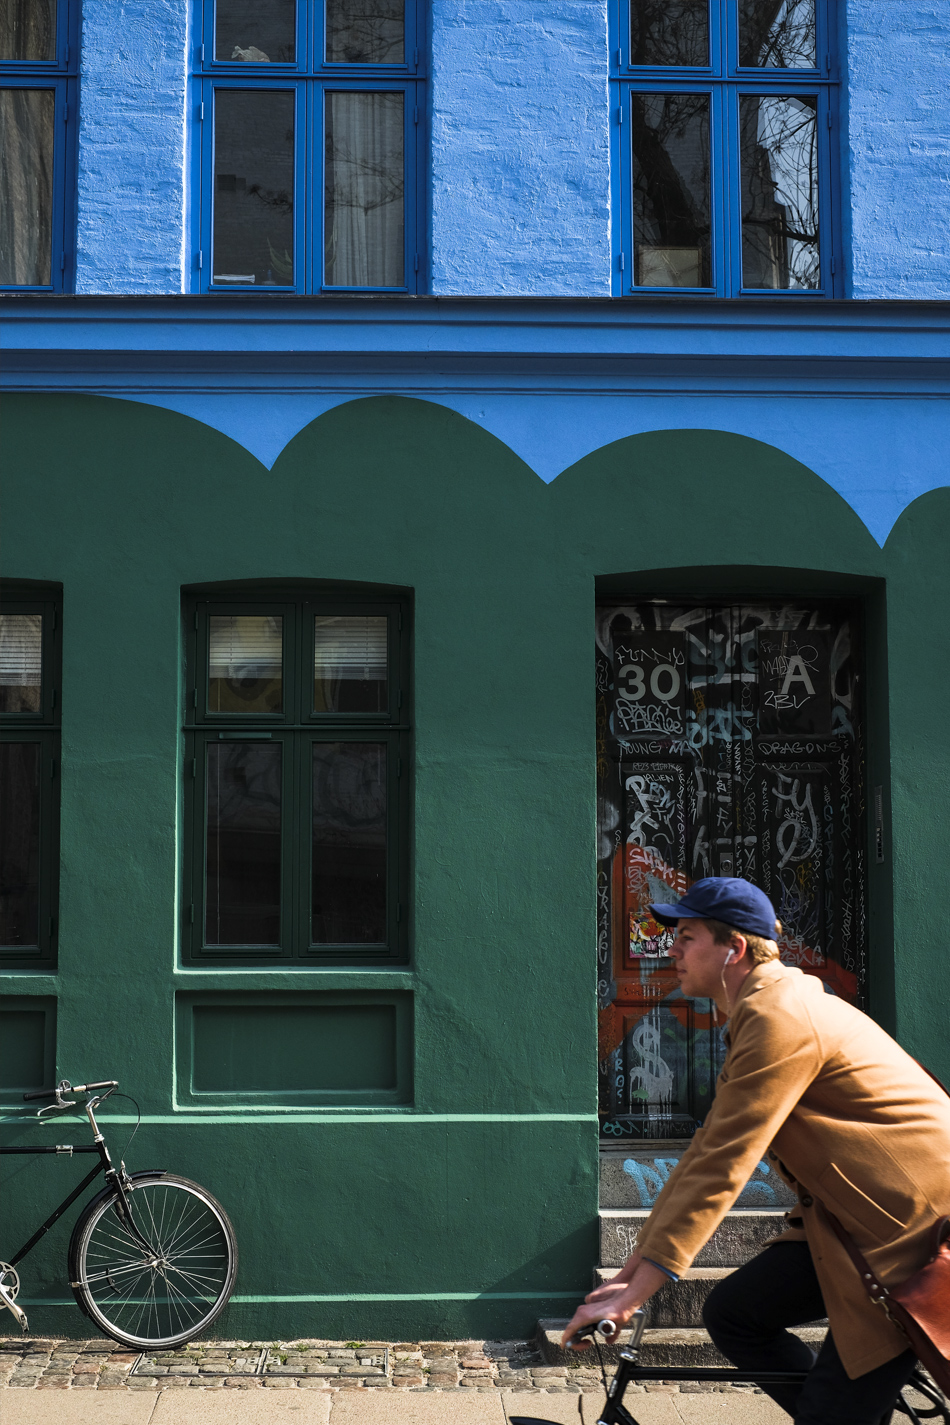 Guy driving a bike, with a cap, infront of a blue and green building in Copenhagen